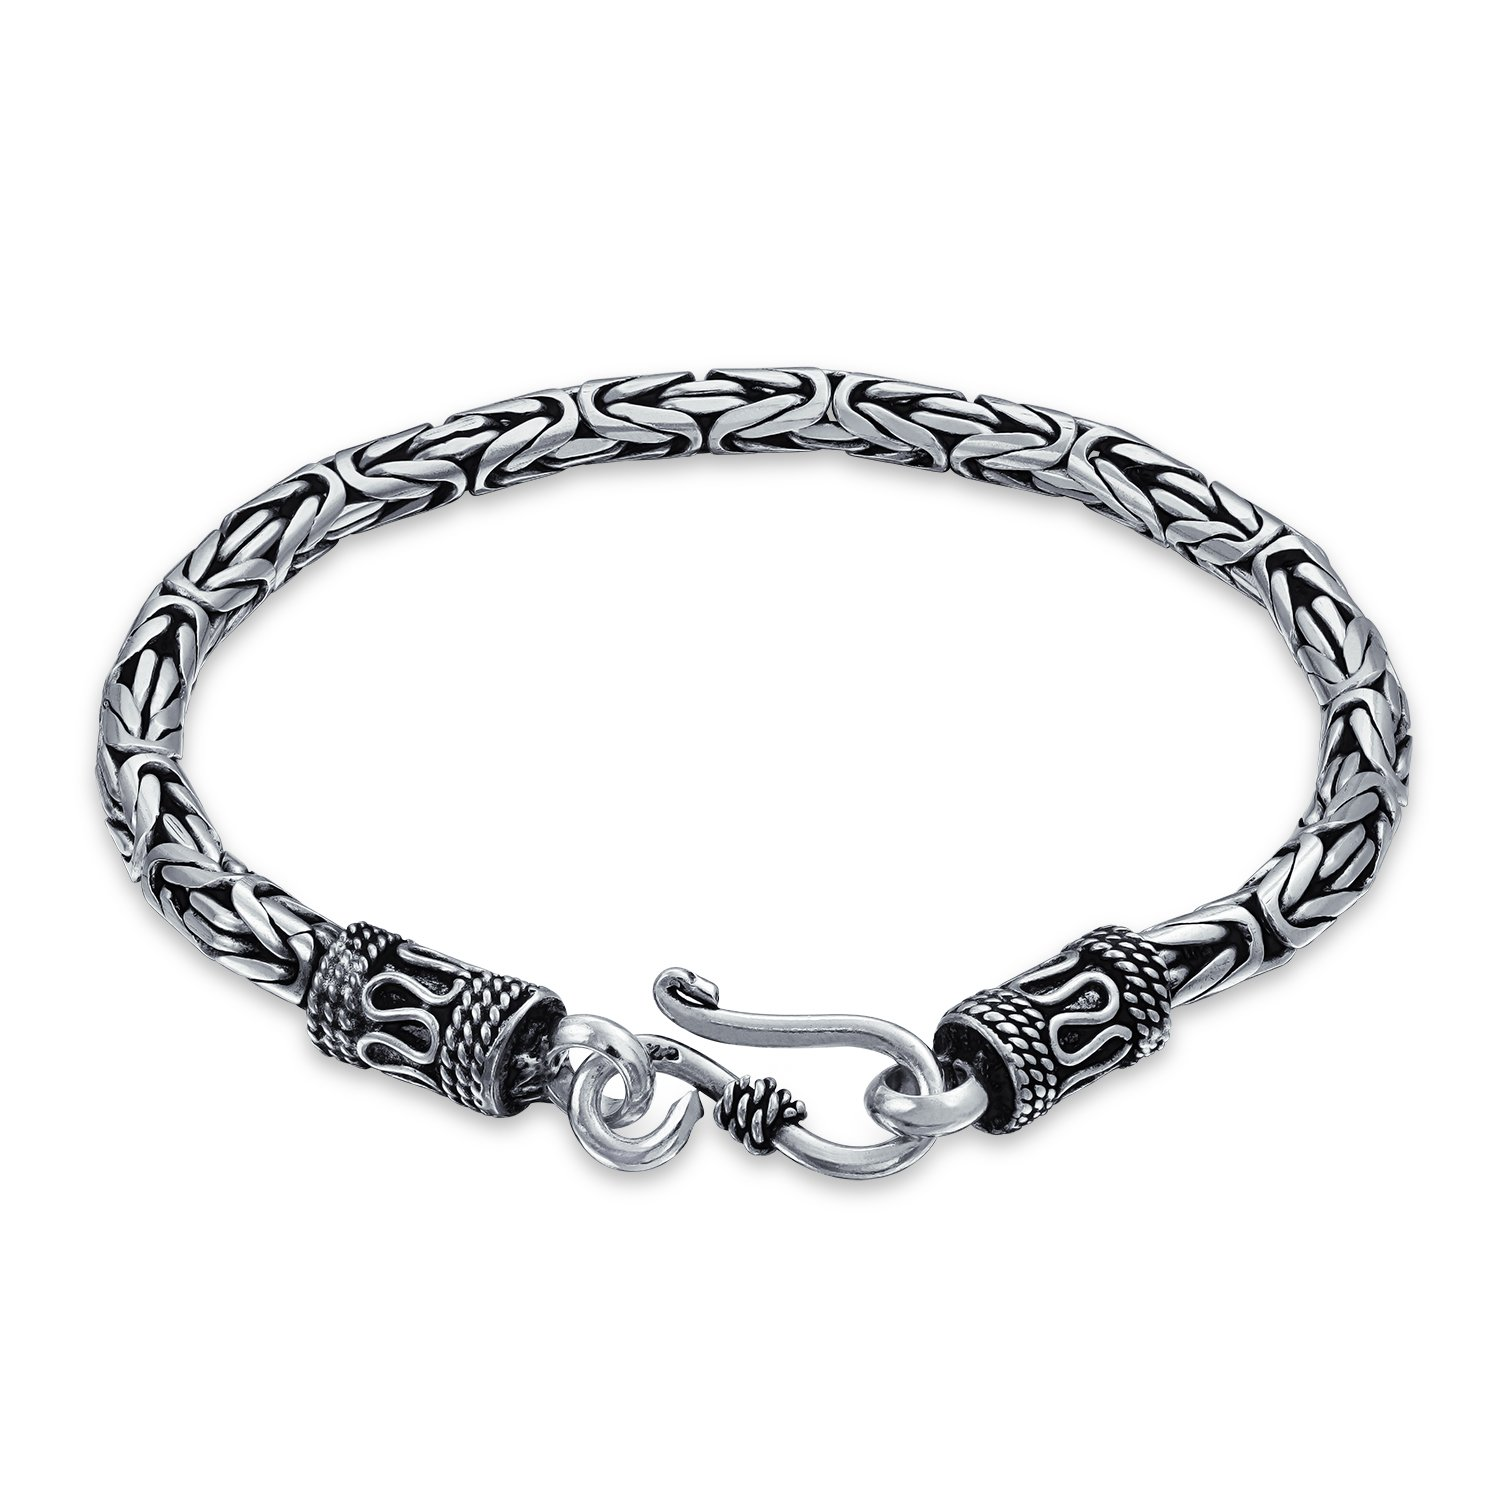 Bali Byzantine Chain Link Bracelet Eye And Hook Antiqued 925 Sterling Silver For Women For Men Bling Jewelry HY-B0-92R-8